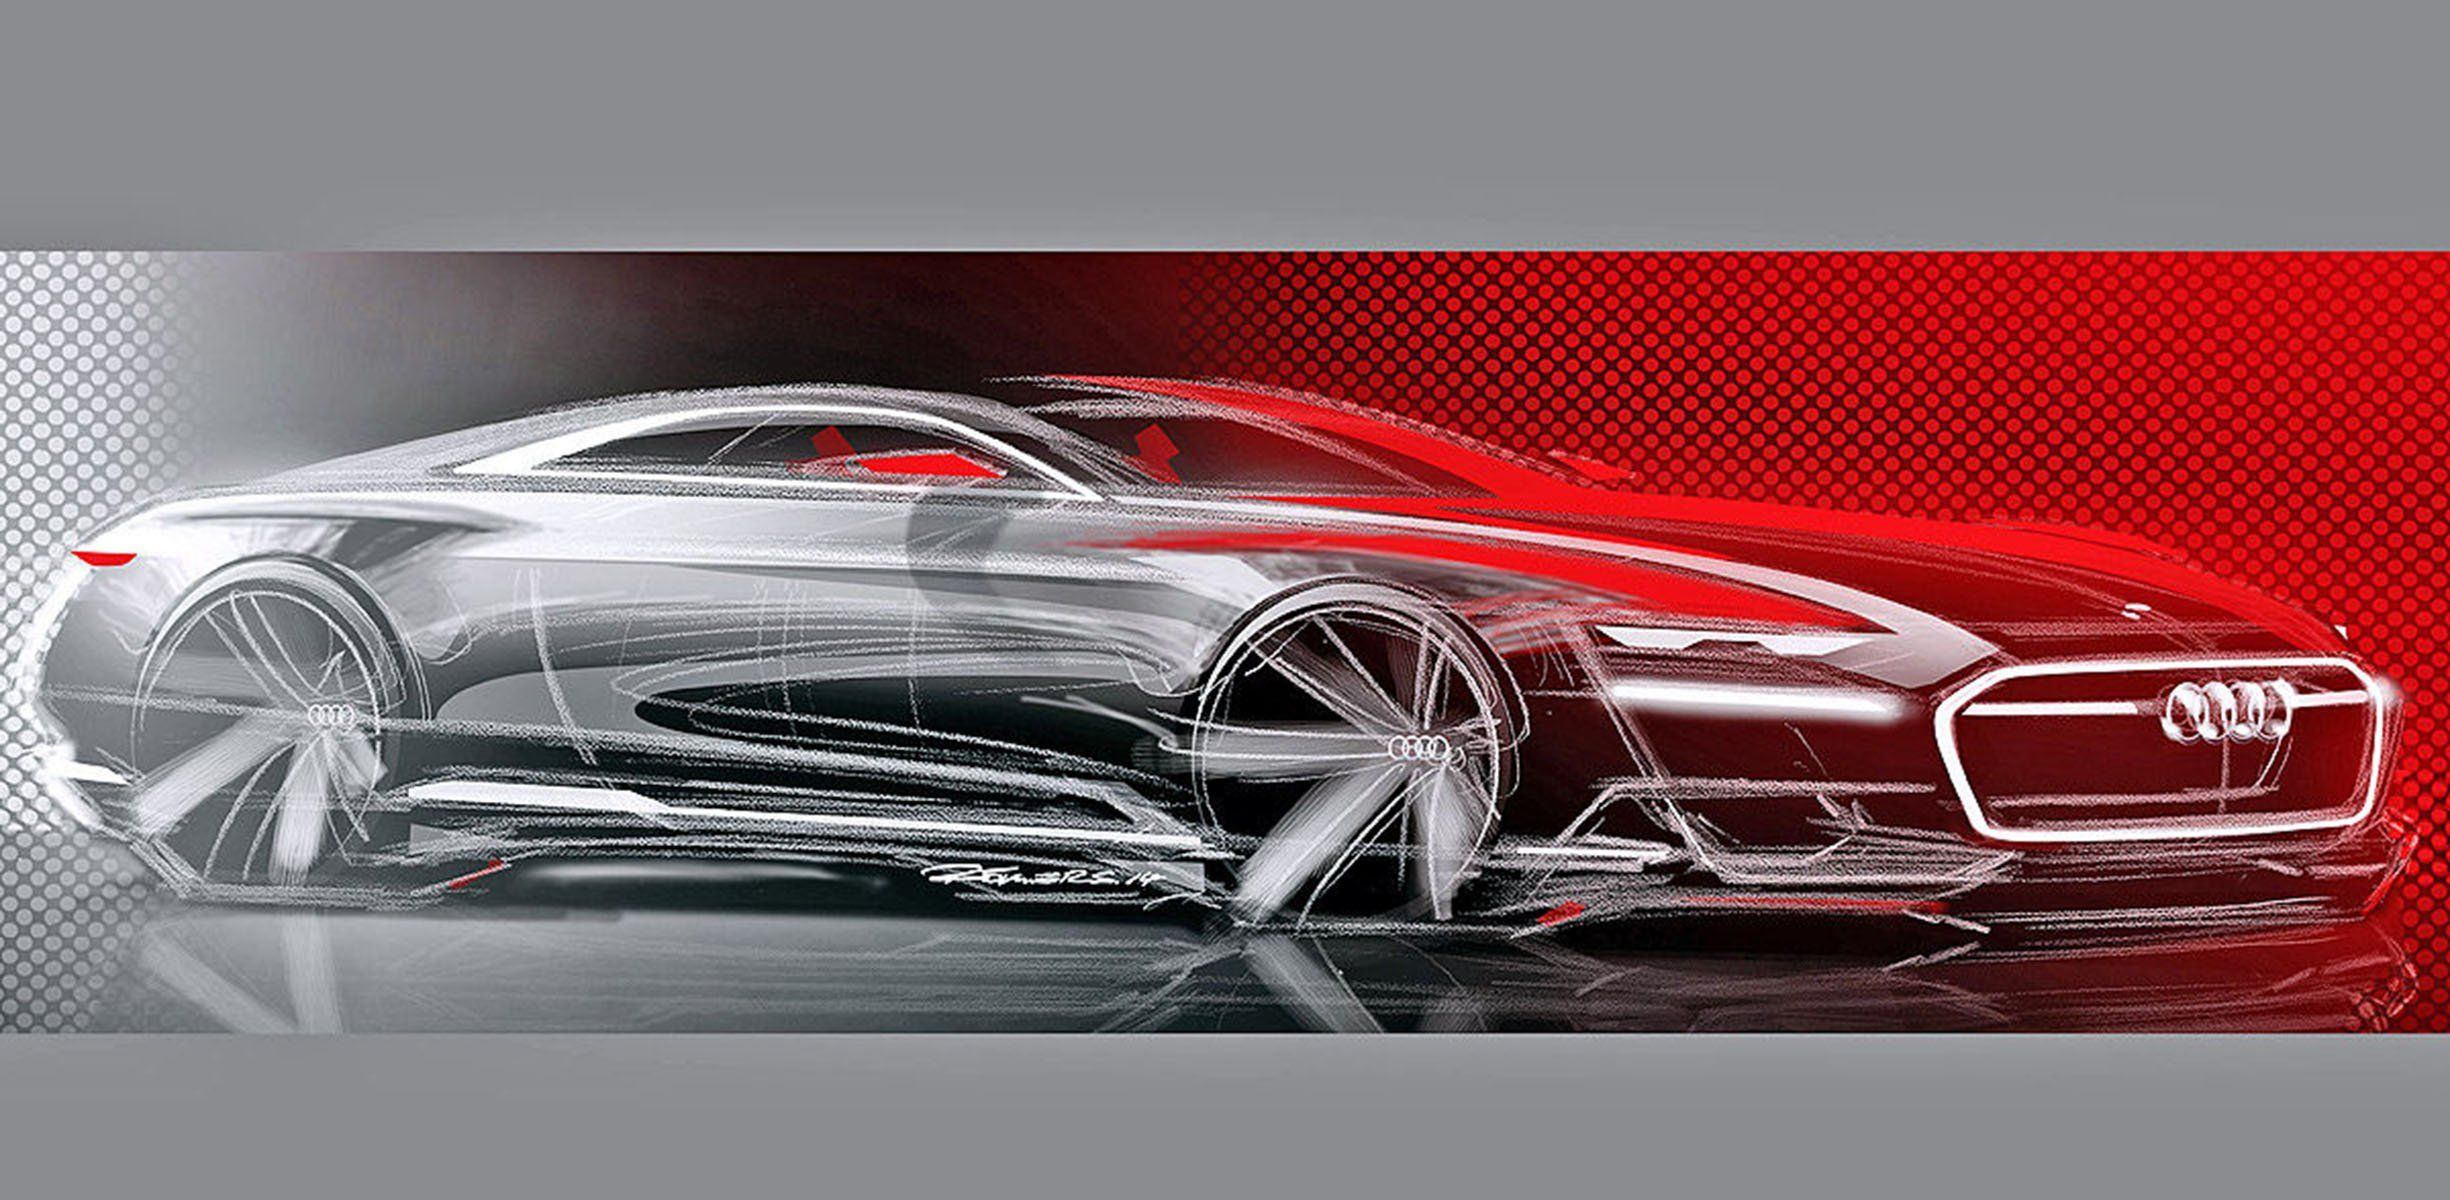 Audi's new 'Prologue' concept teased again